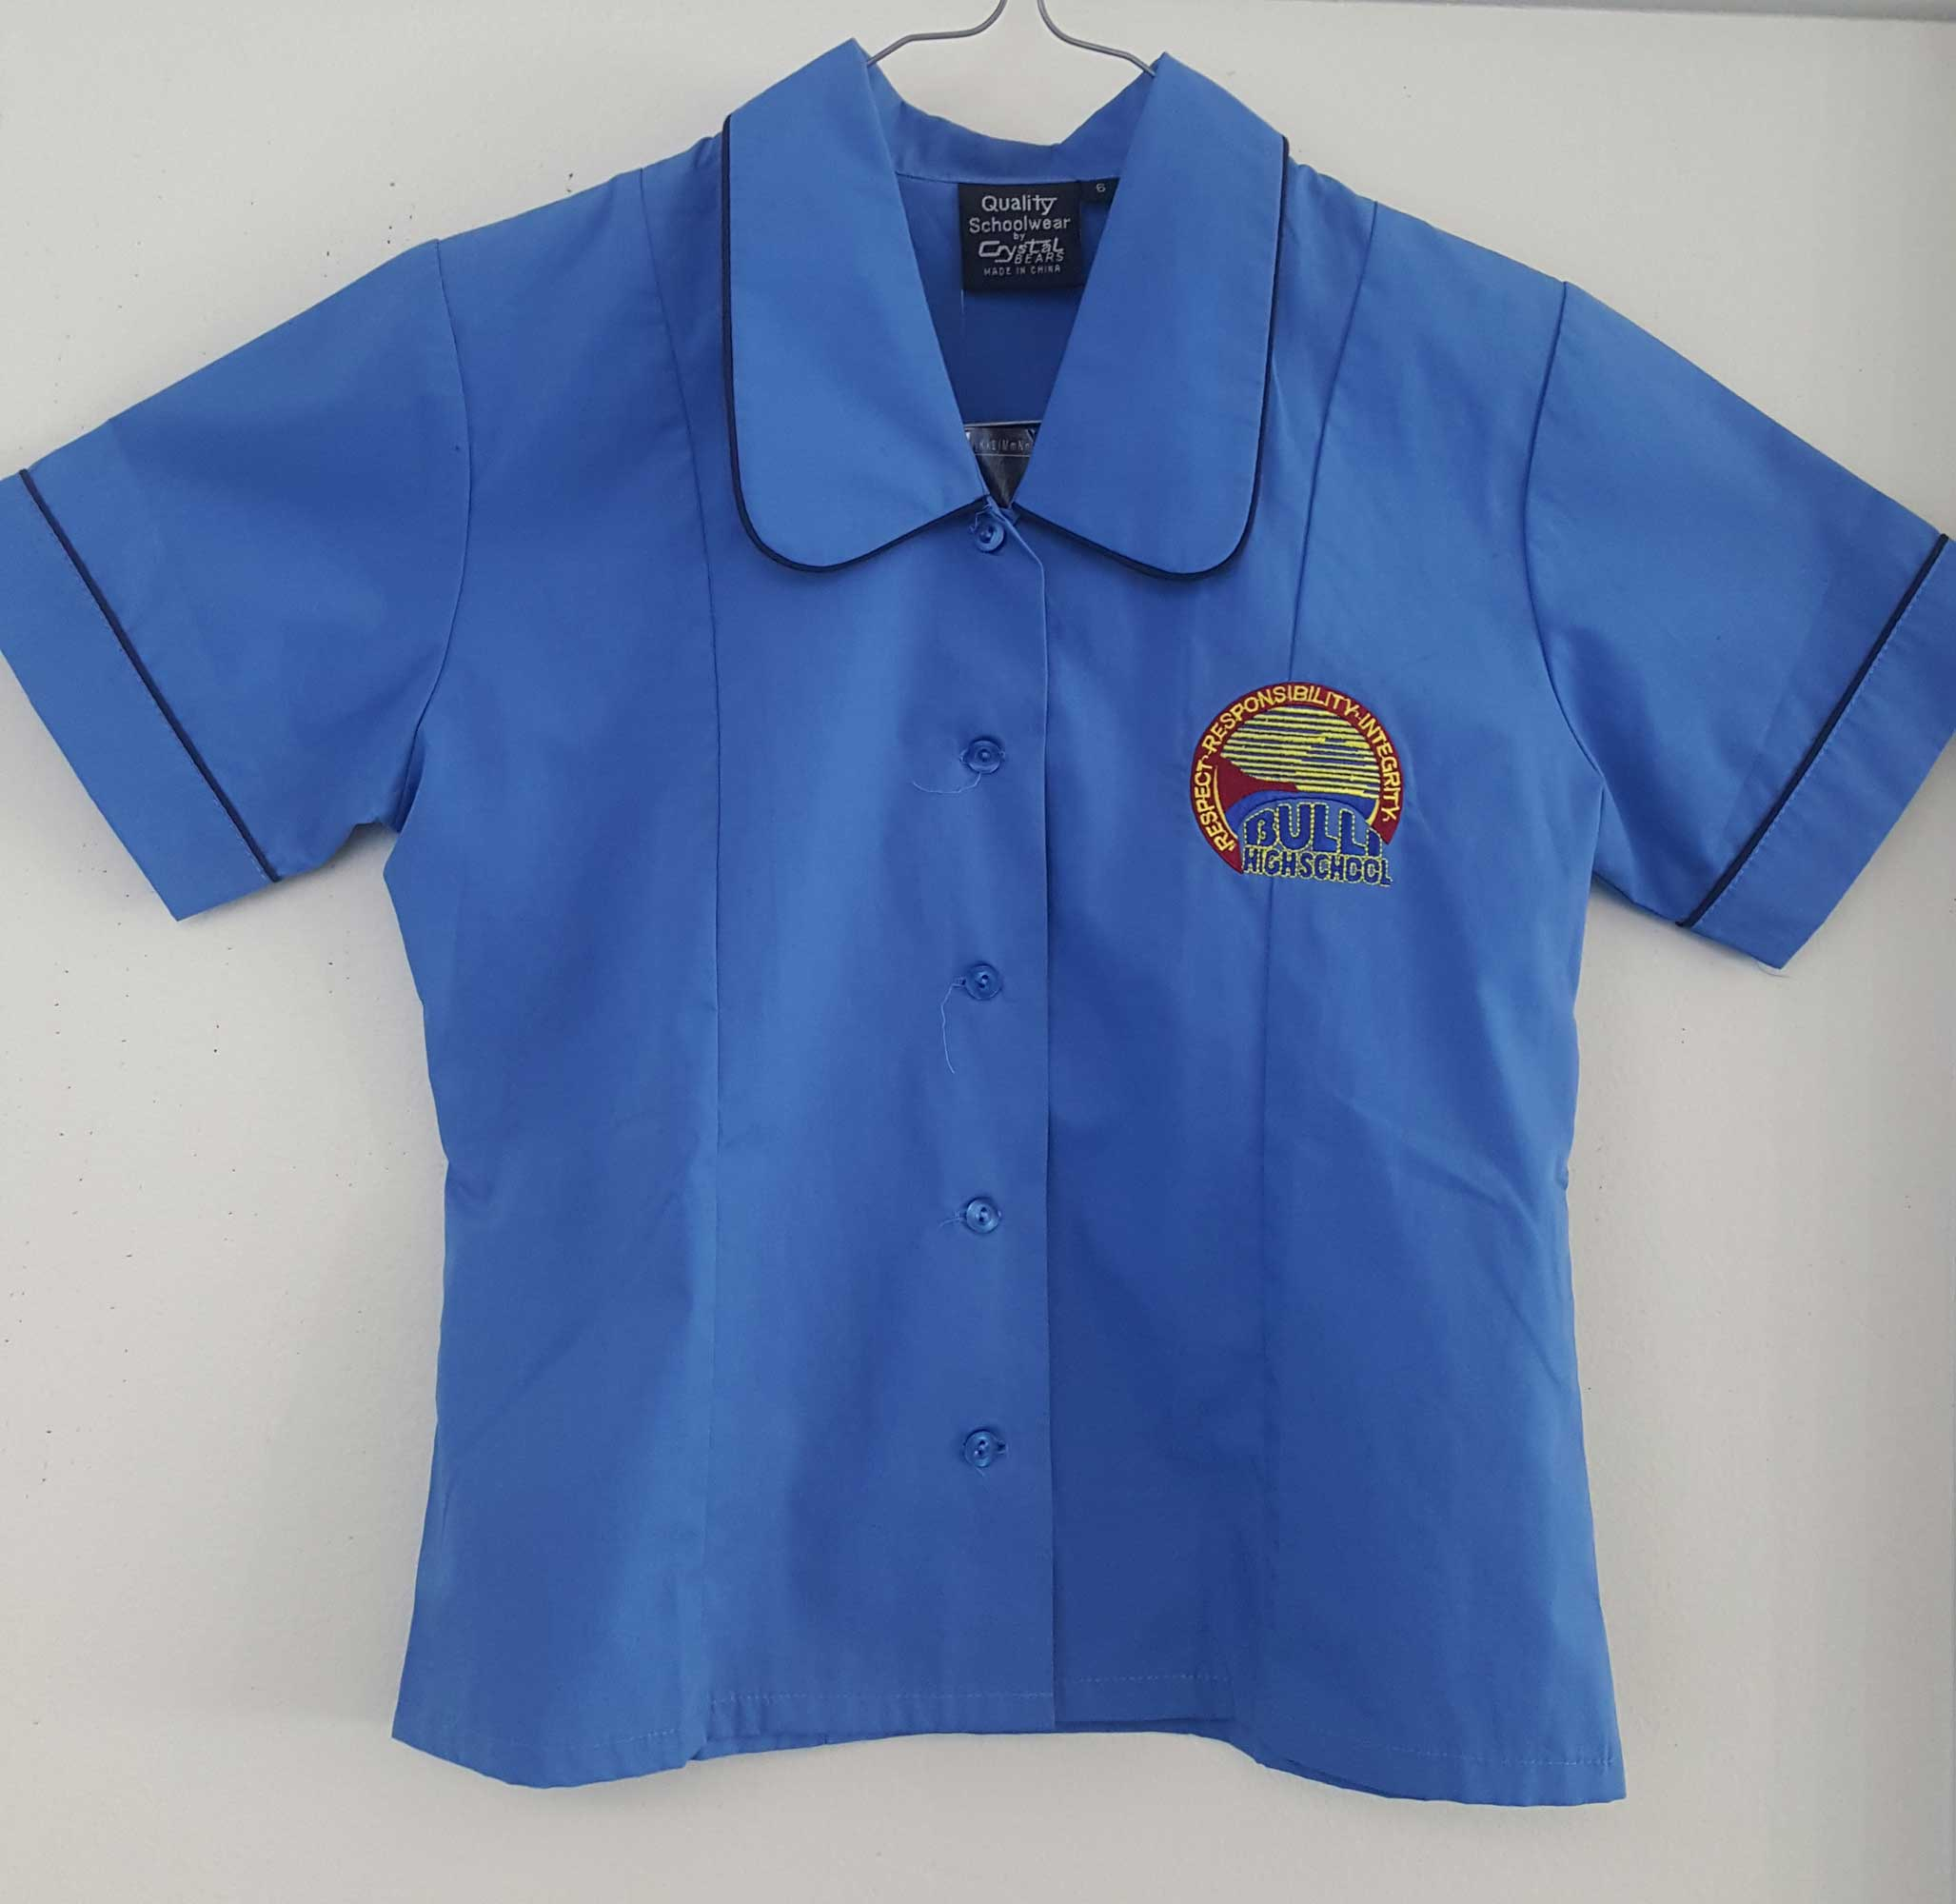 Junior girl's blouse